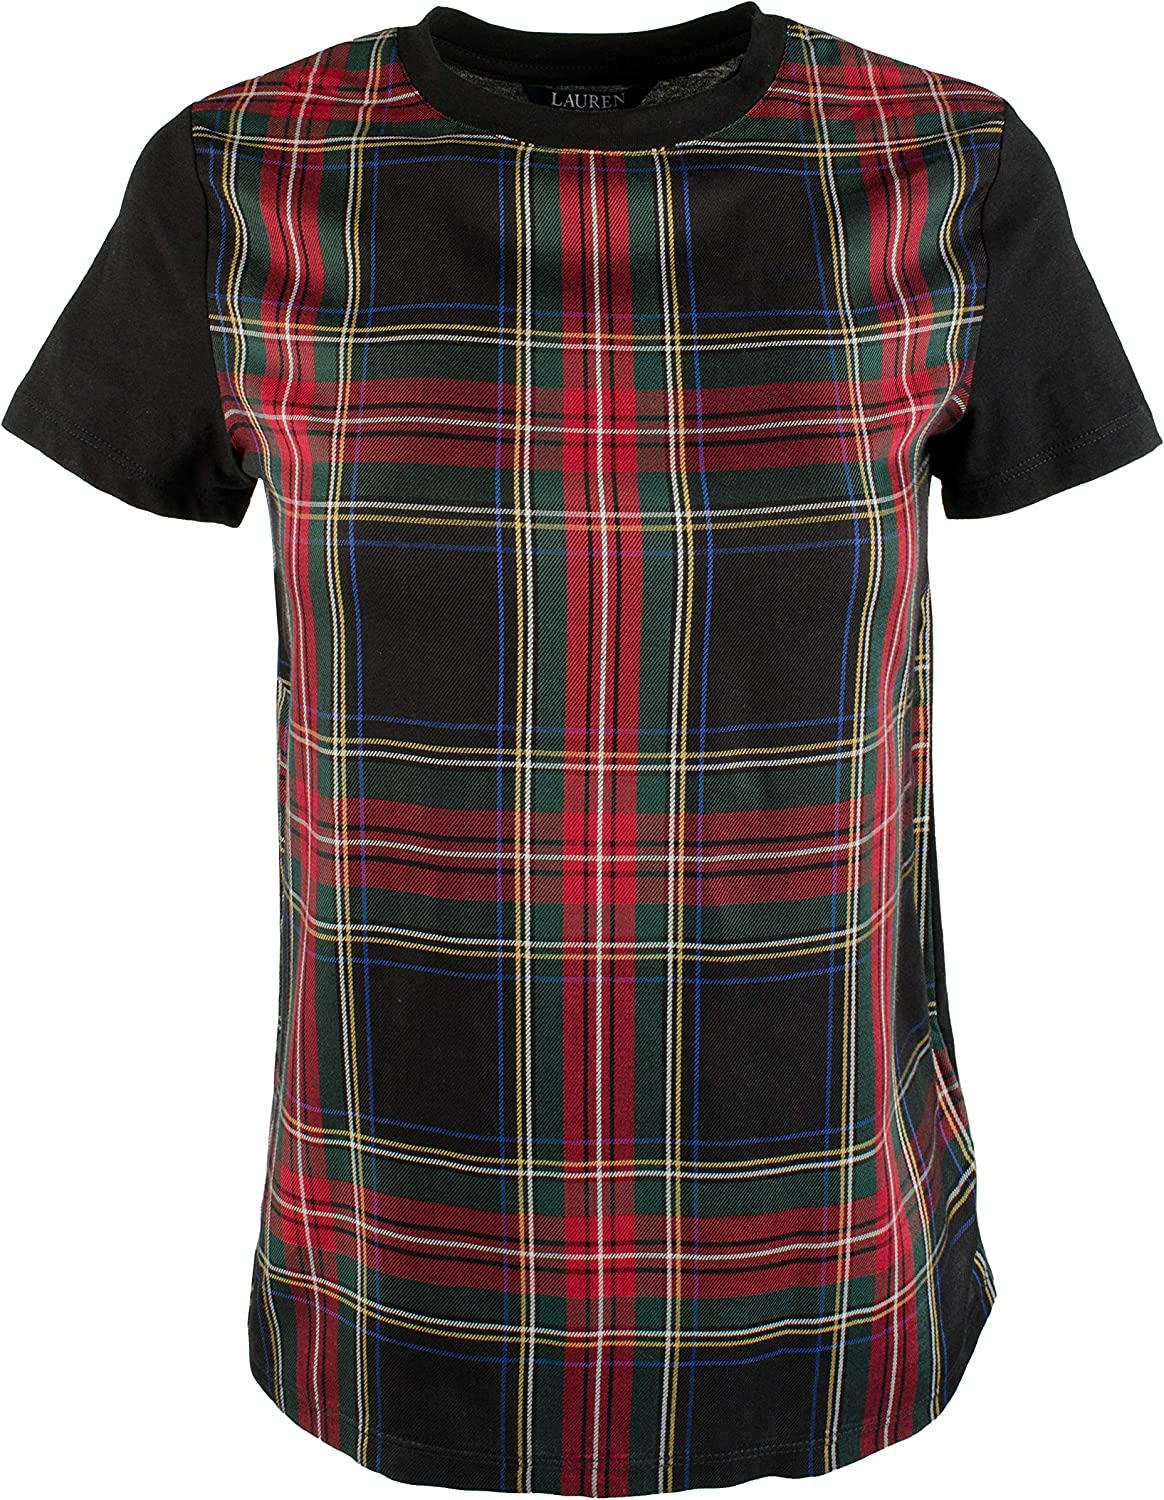 Lauren Ralph Lauren Women's Petite PlaidPanel Shirt